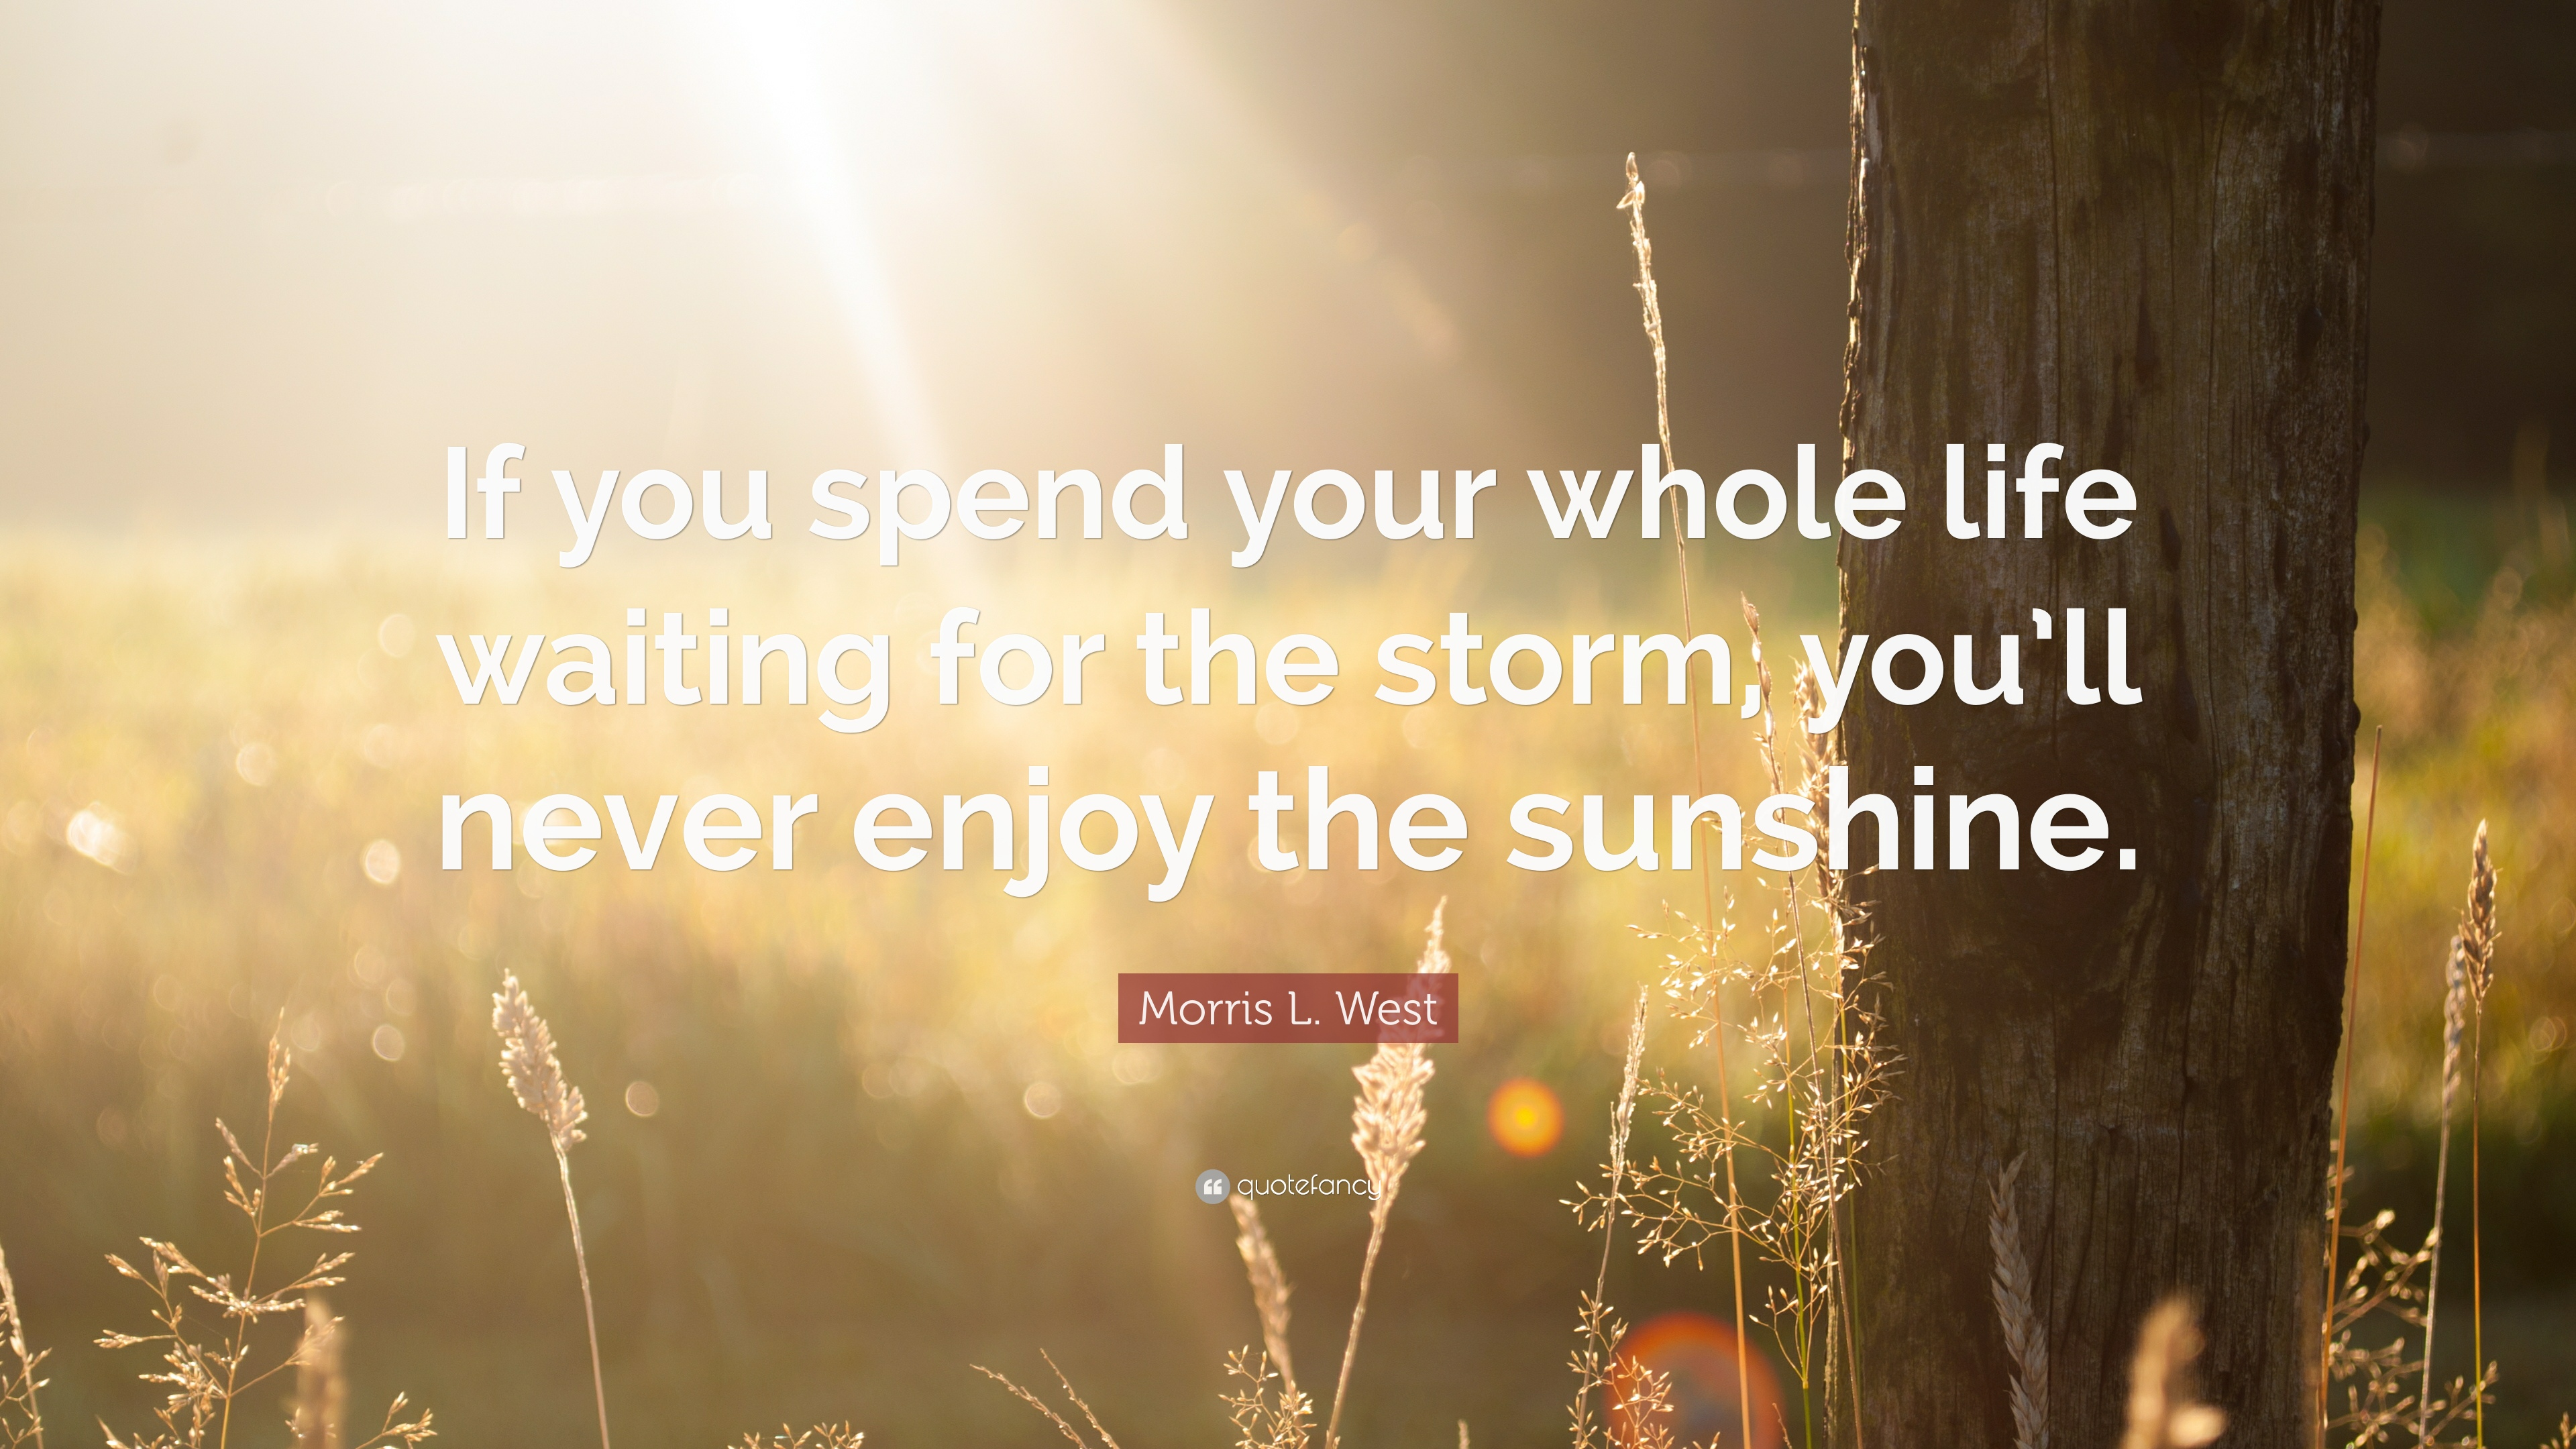 Dalai Lama Wallpaper Quotes Morris L West Quote If You Spend Your Whole Life